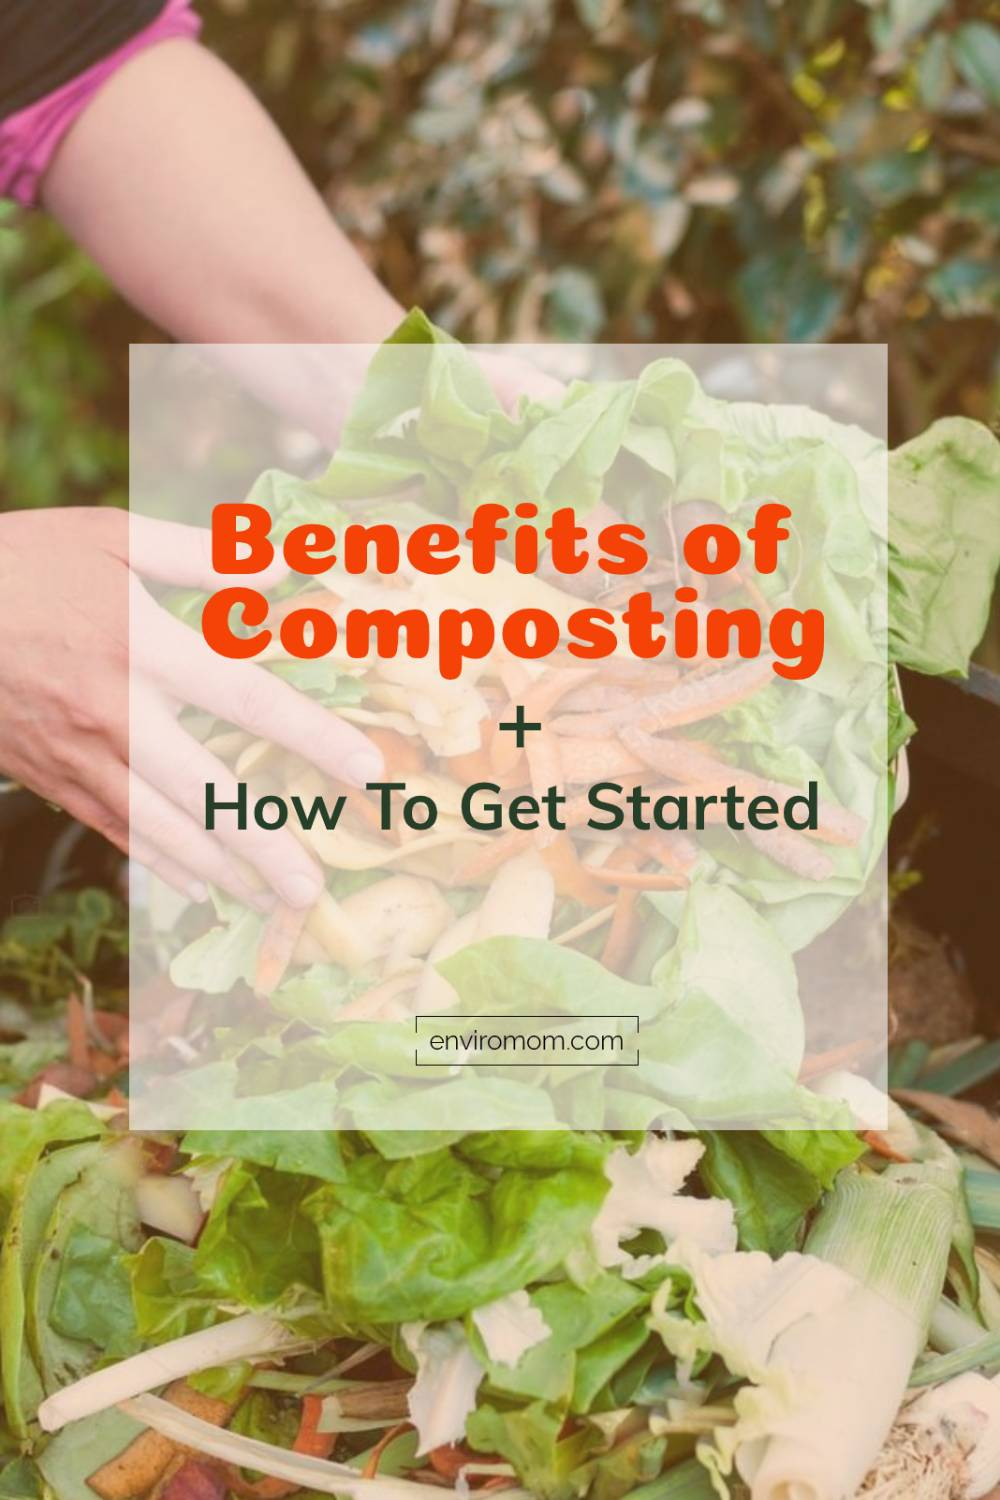 Composting benefits and how to get started